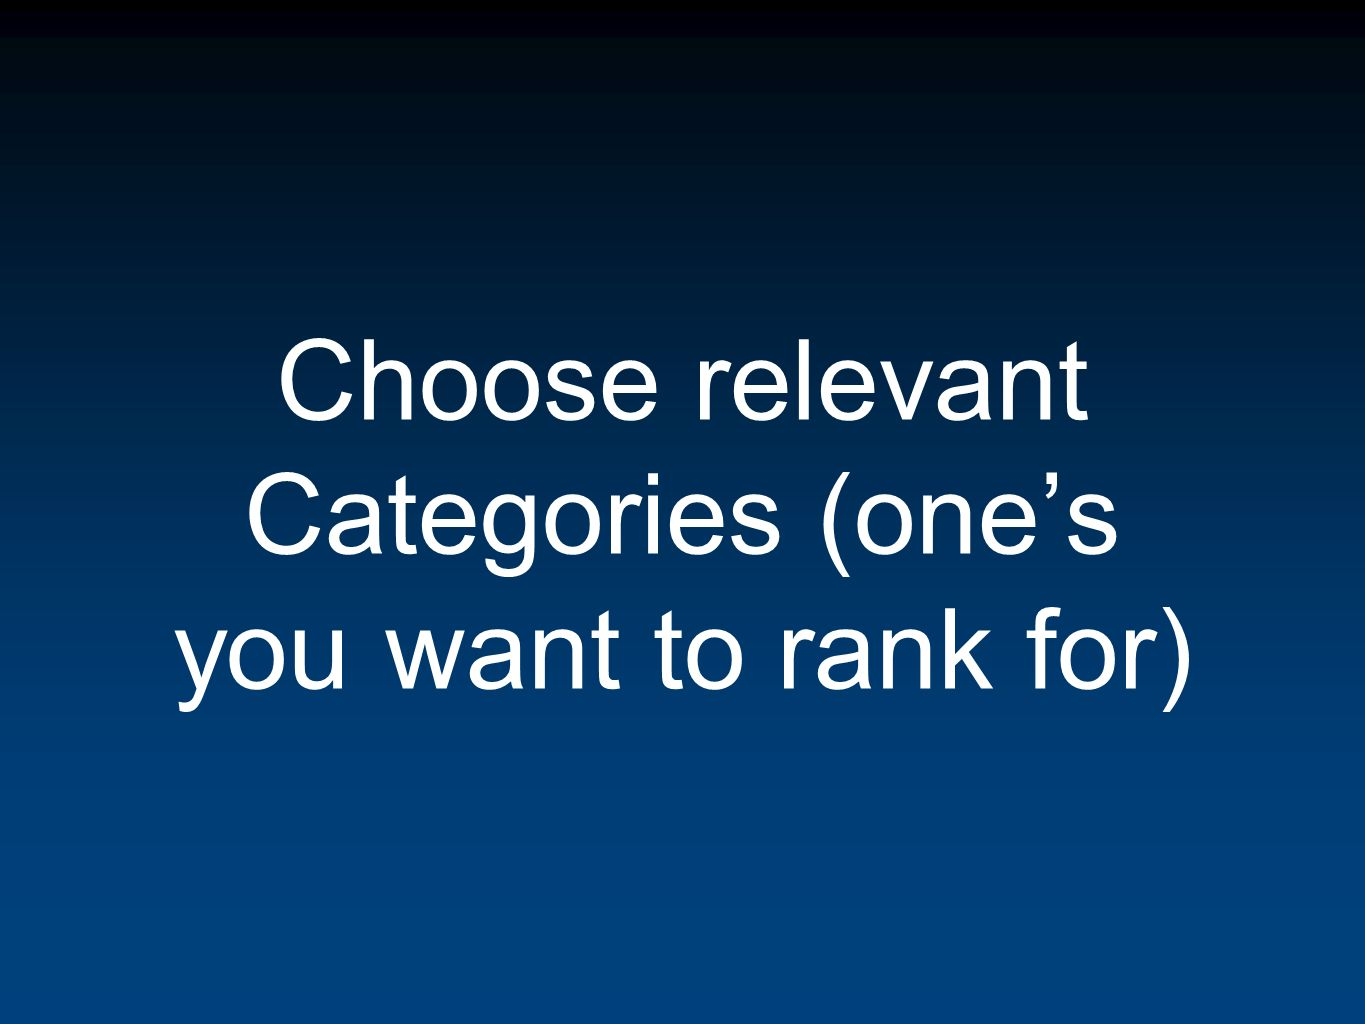 Choose relevant Categories (ones you want to rank for)